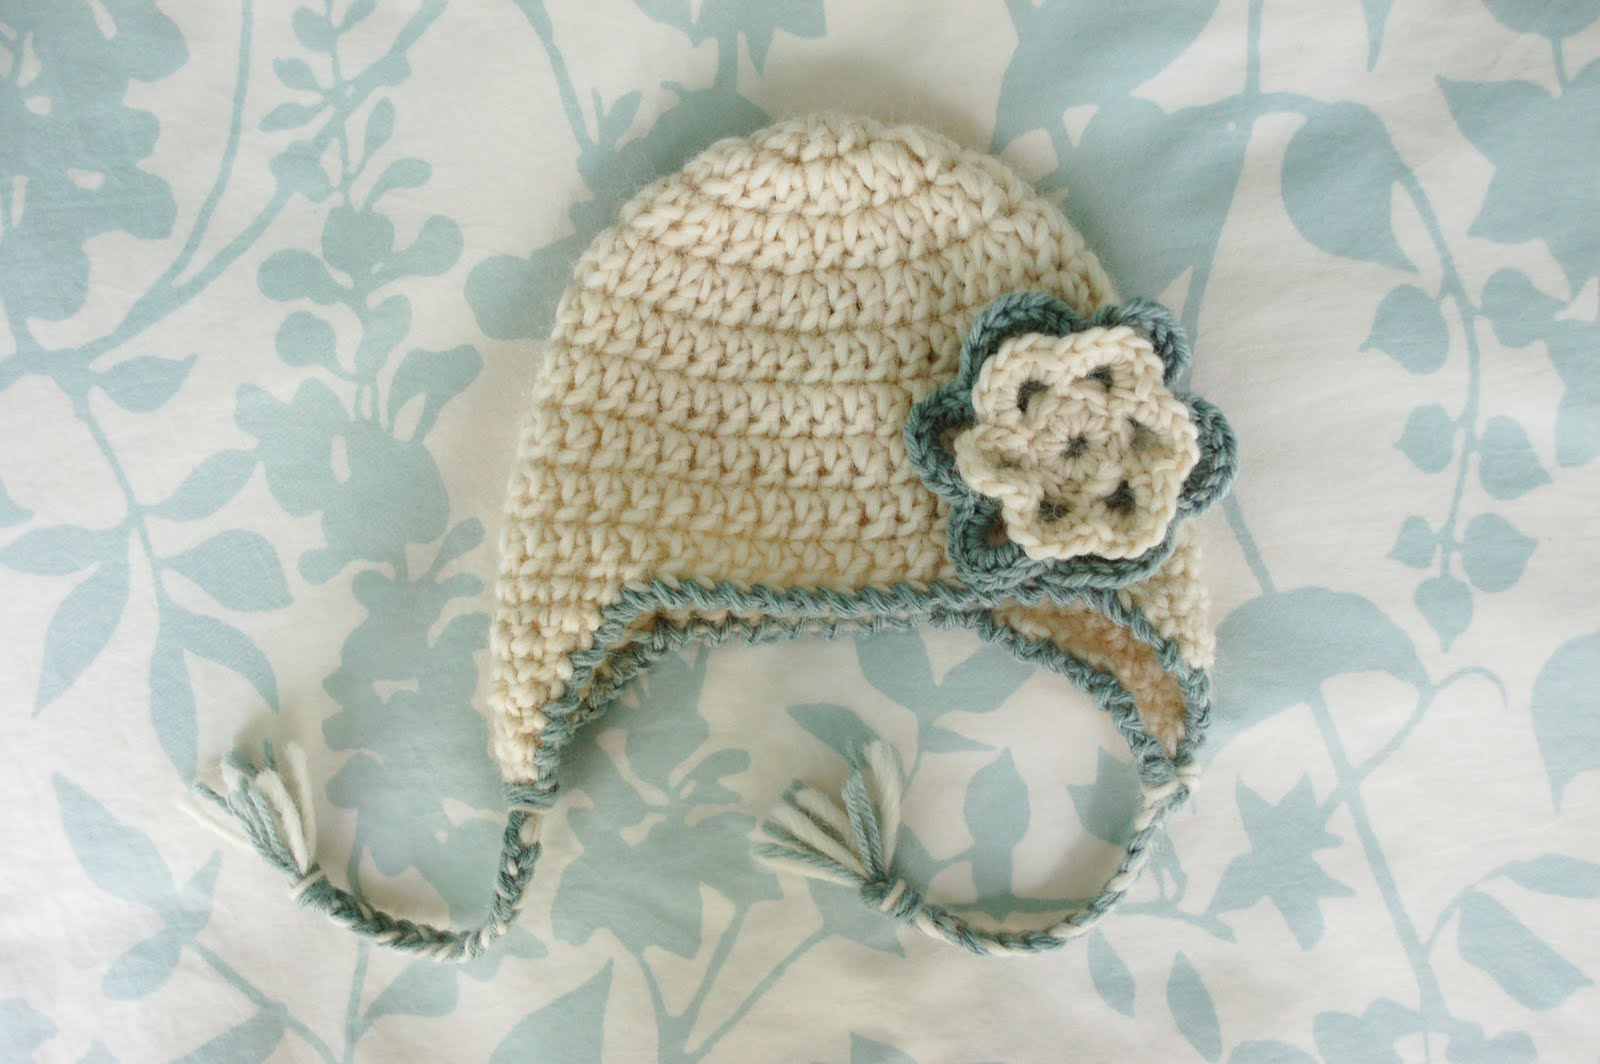 Crochet Pattern For Newborn Hat With Ear Flaps : Alli Crafts: Free Pattern: Baby Earflap Hat - Newborn